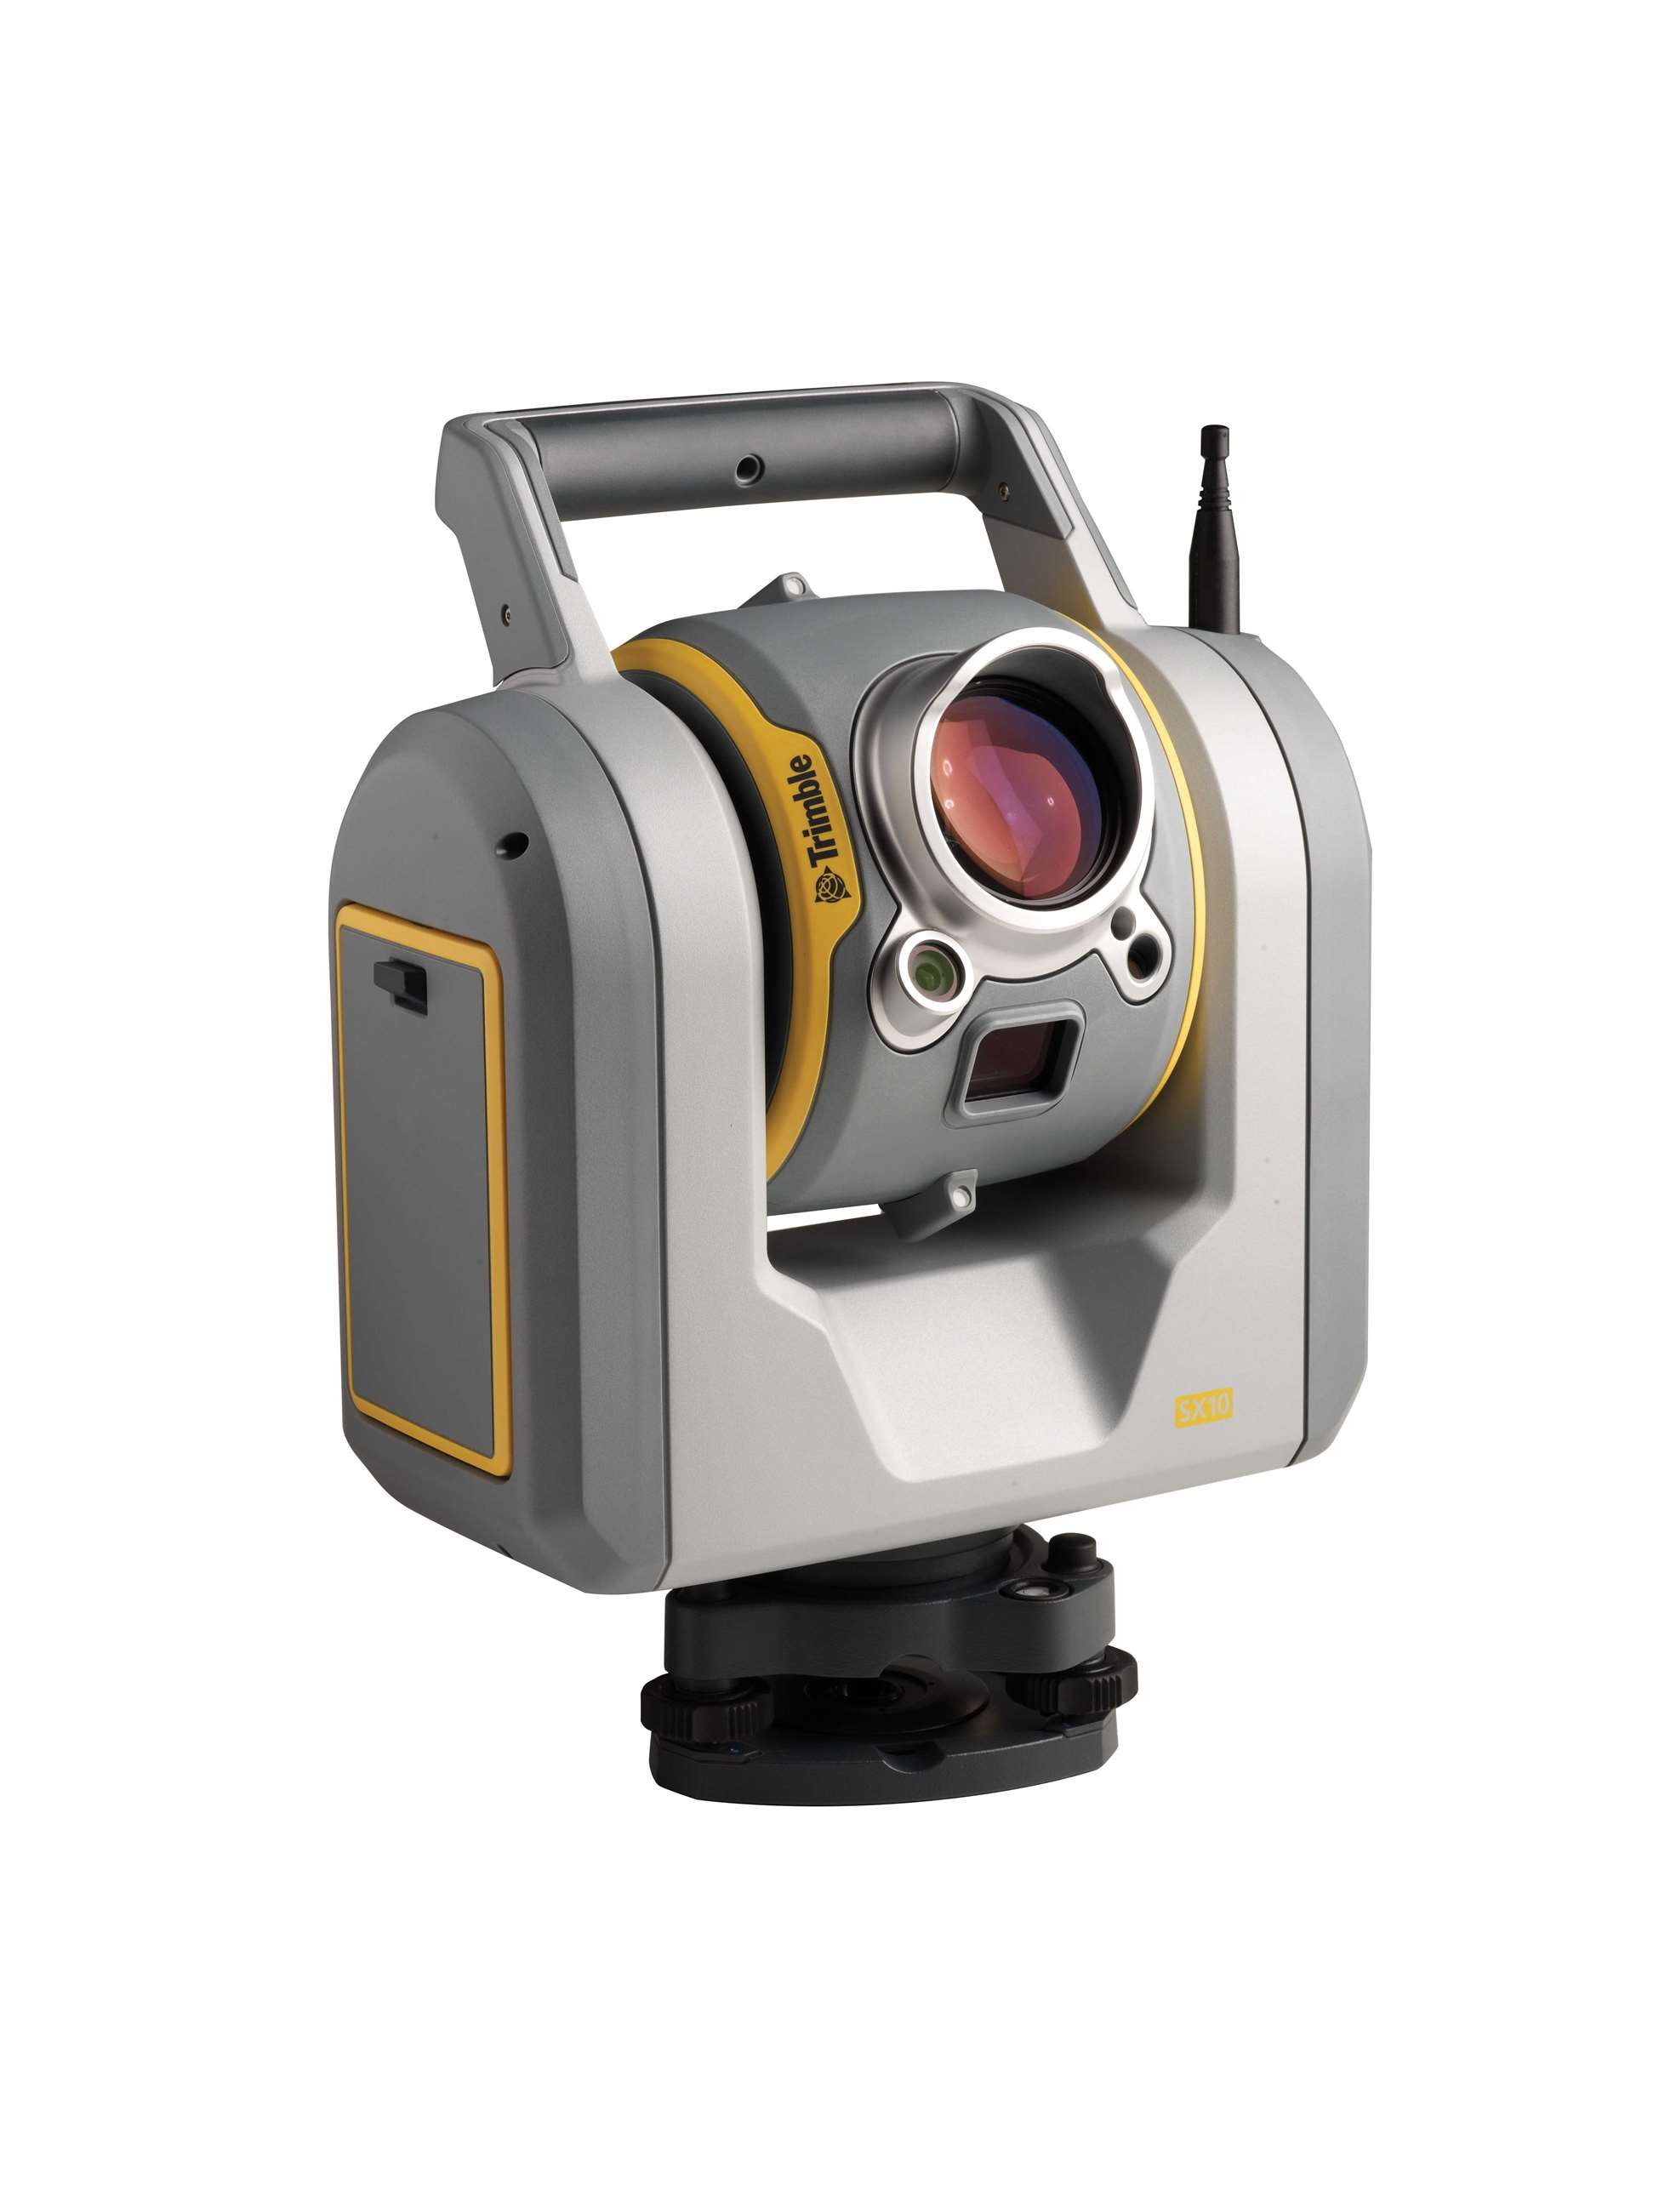 trimble sx10 total station studio face right_790